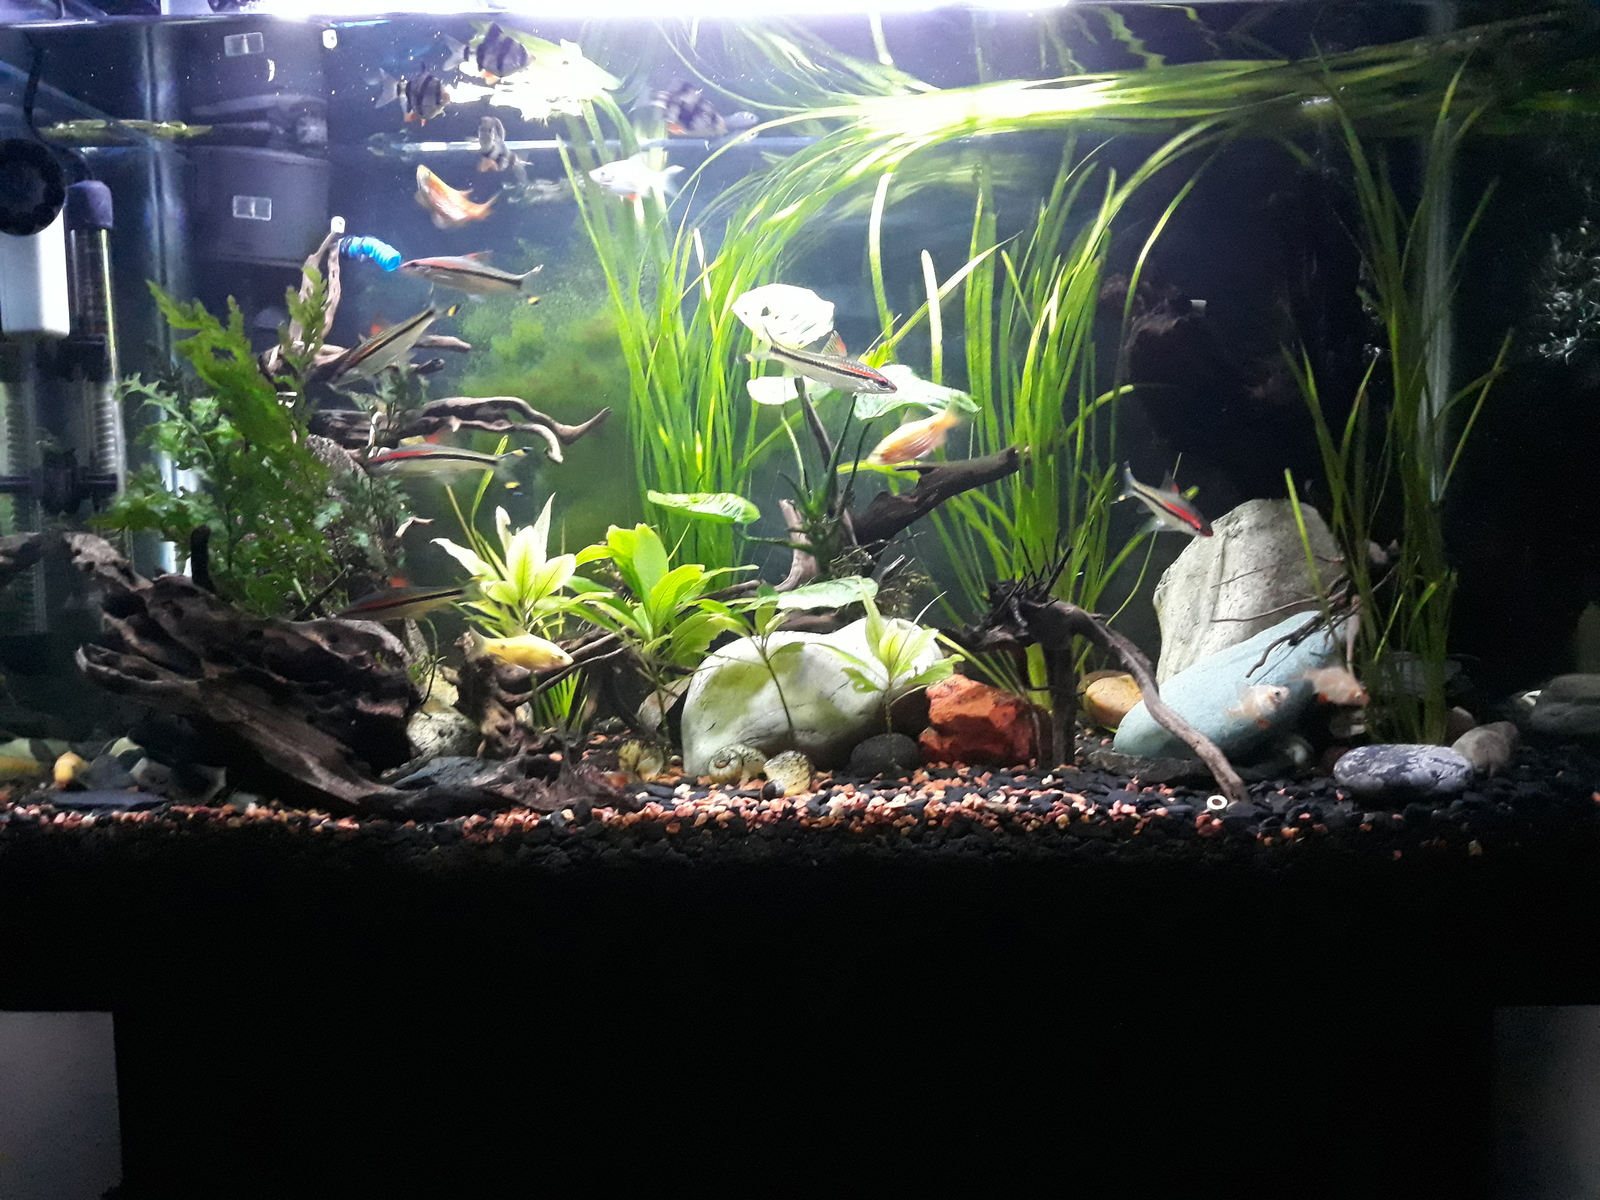 My plant tank | by hamid bird